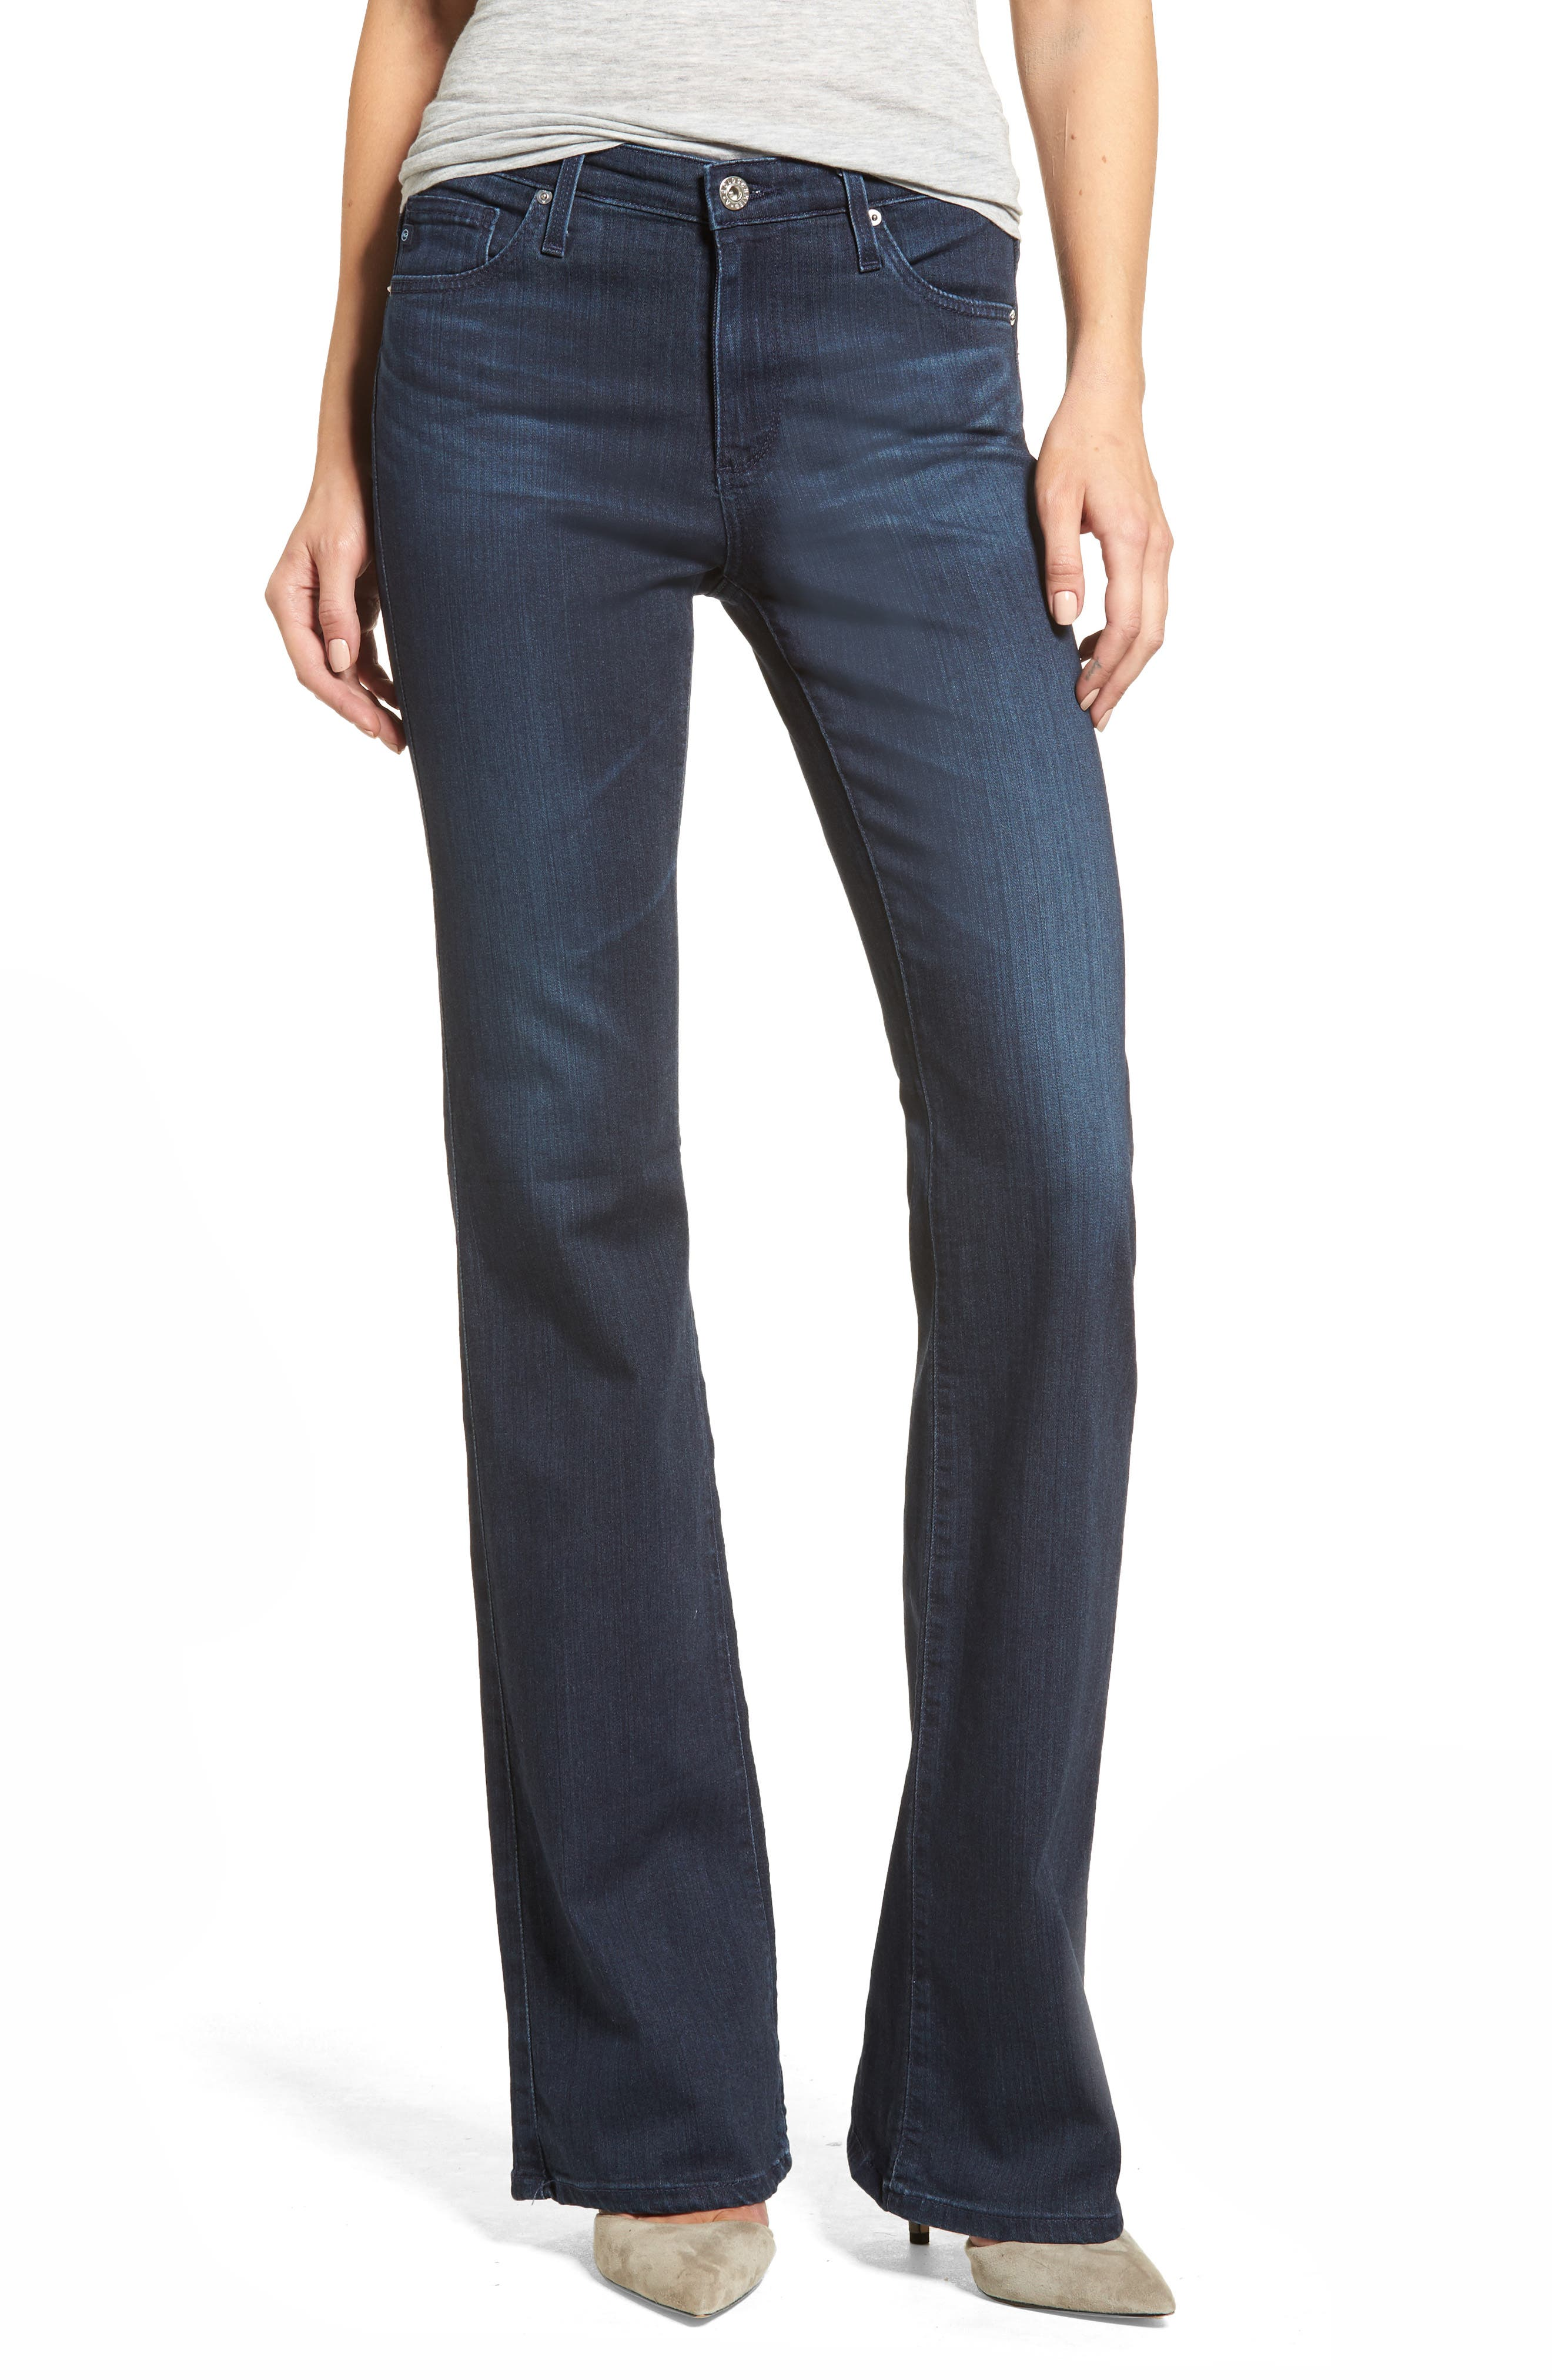 Alternate Image 1 Selected - AG 'The New Angel' Bootcut Jeans (Gallant)